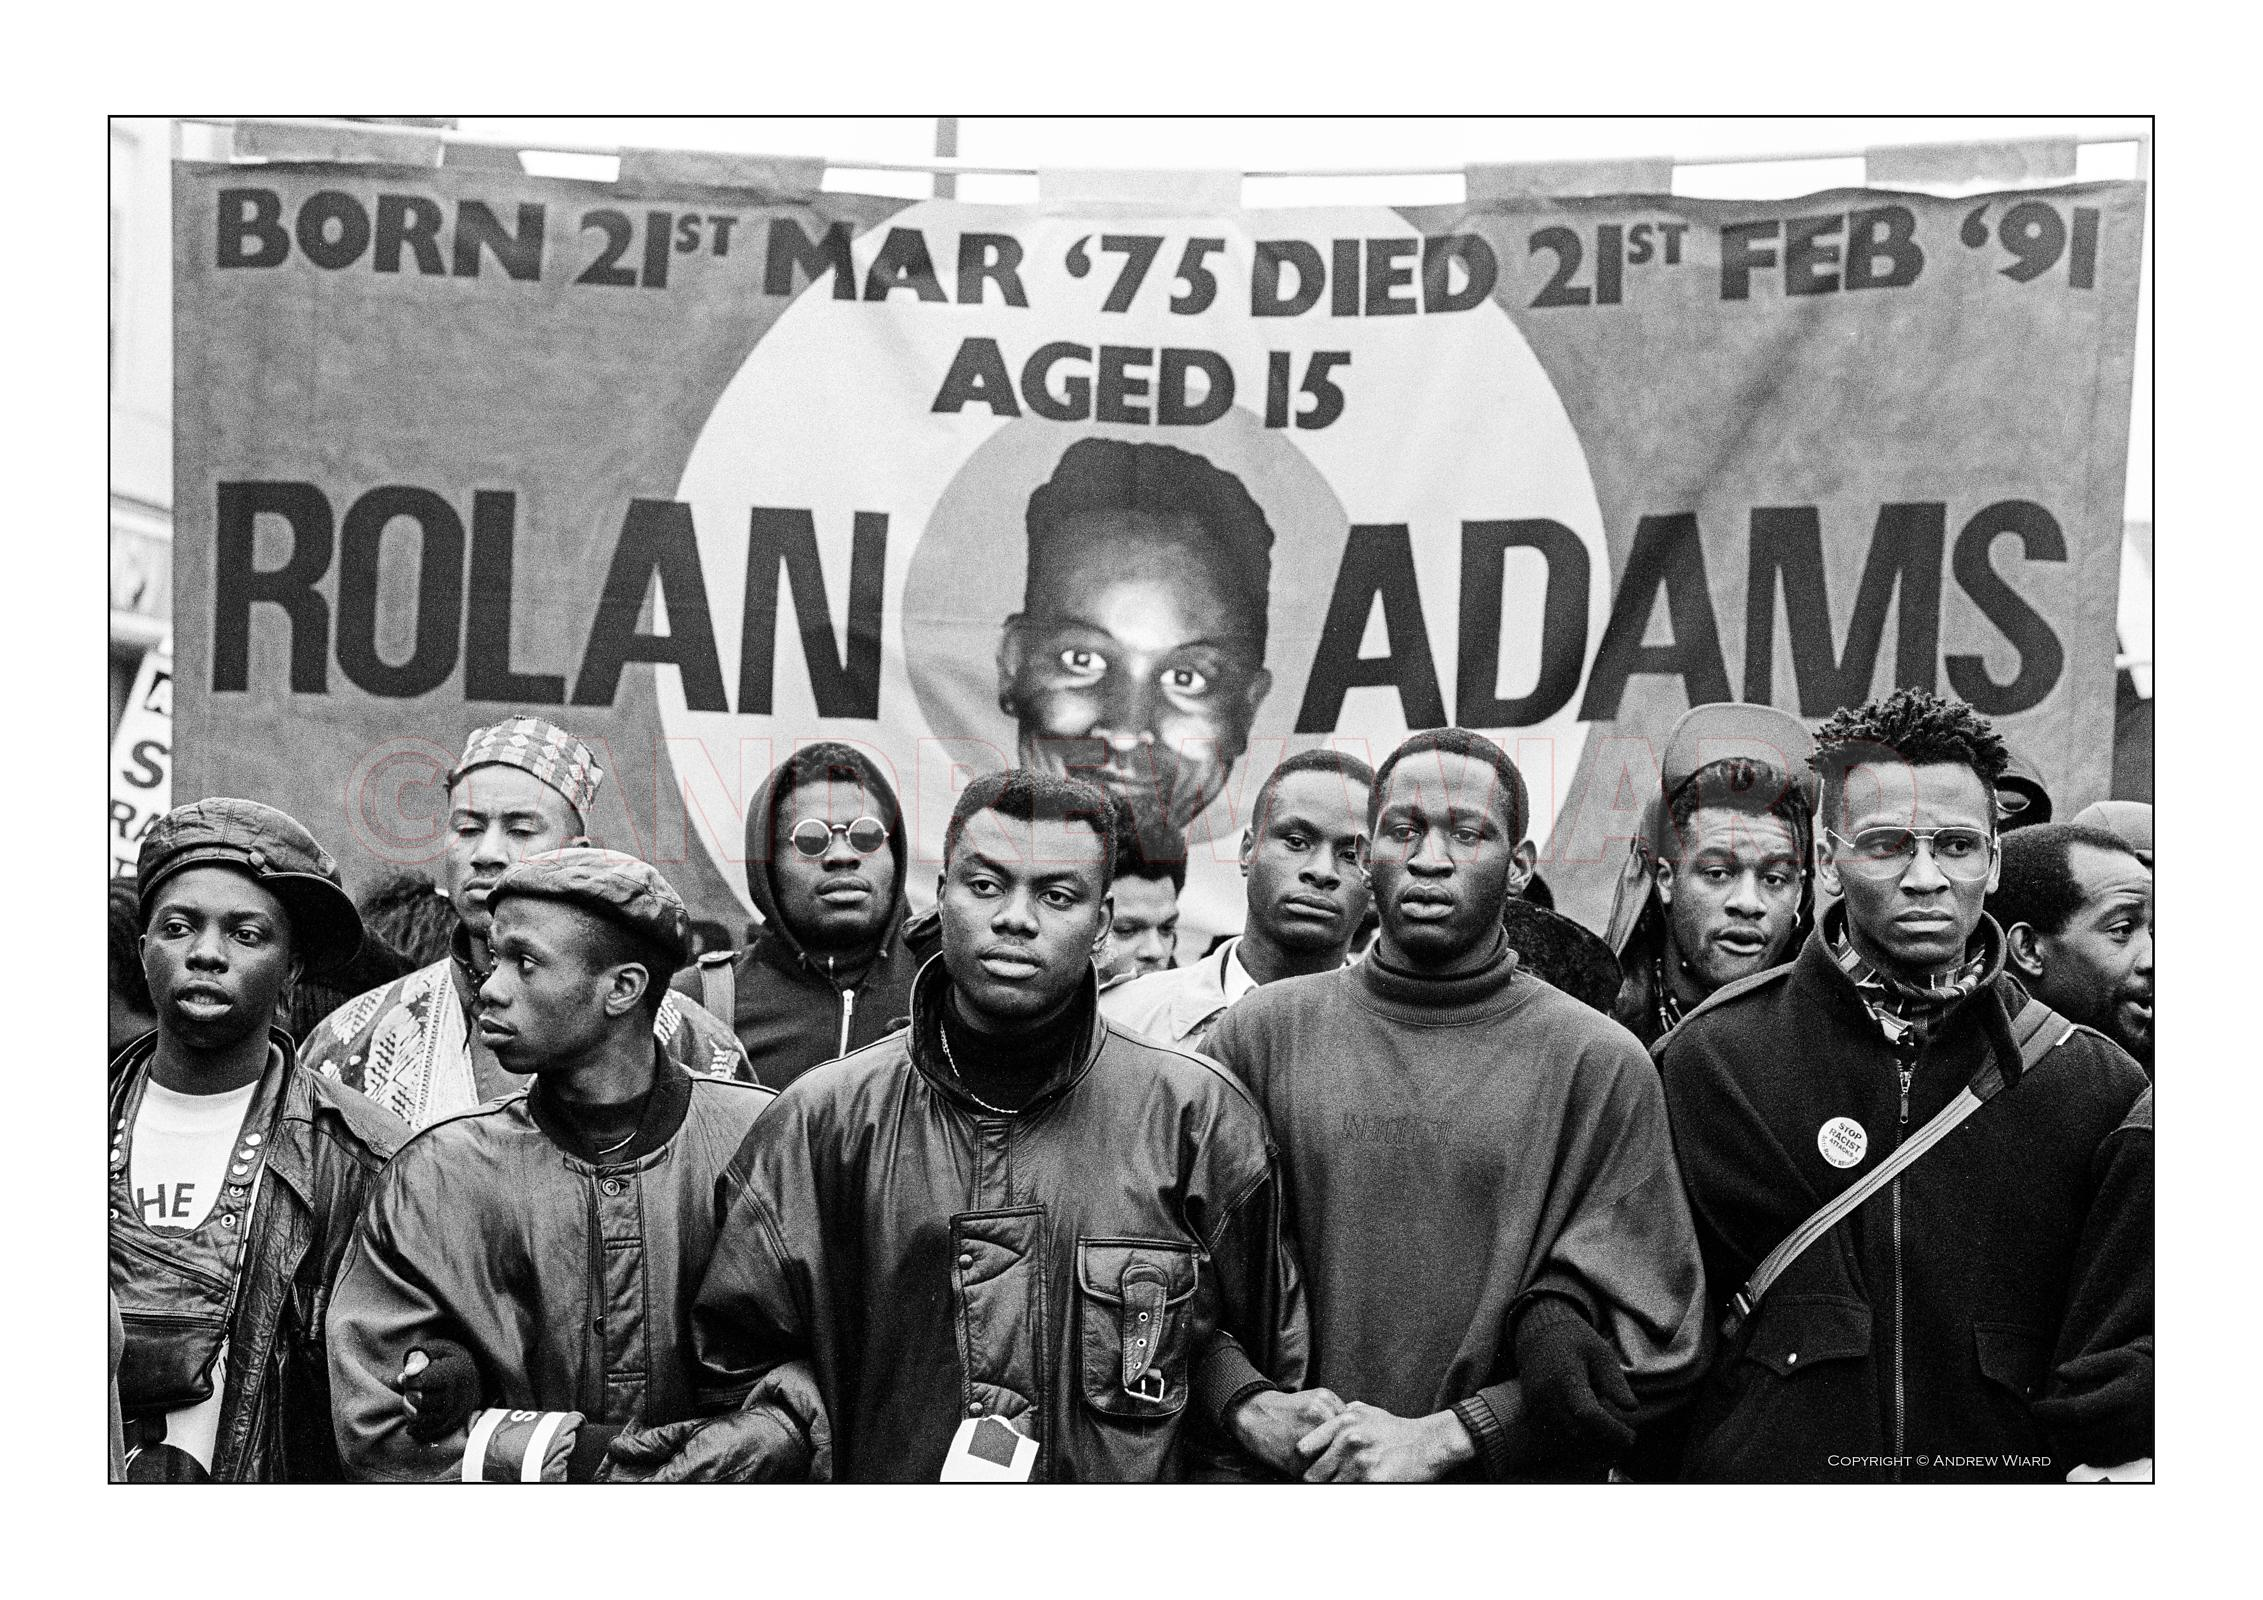 In memory of Rolan Adams